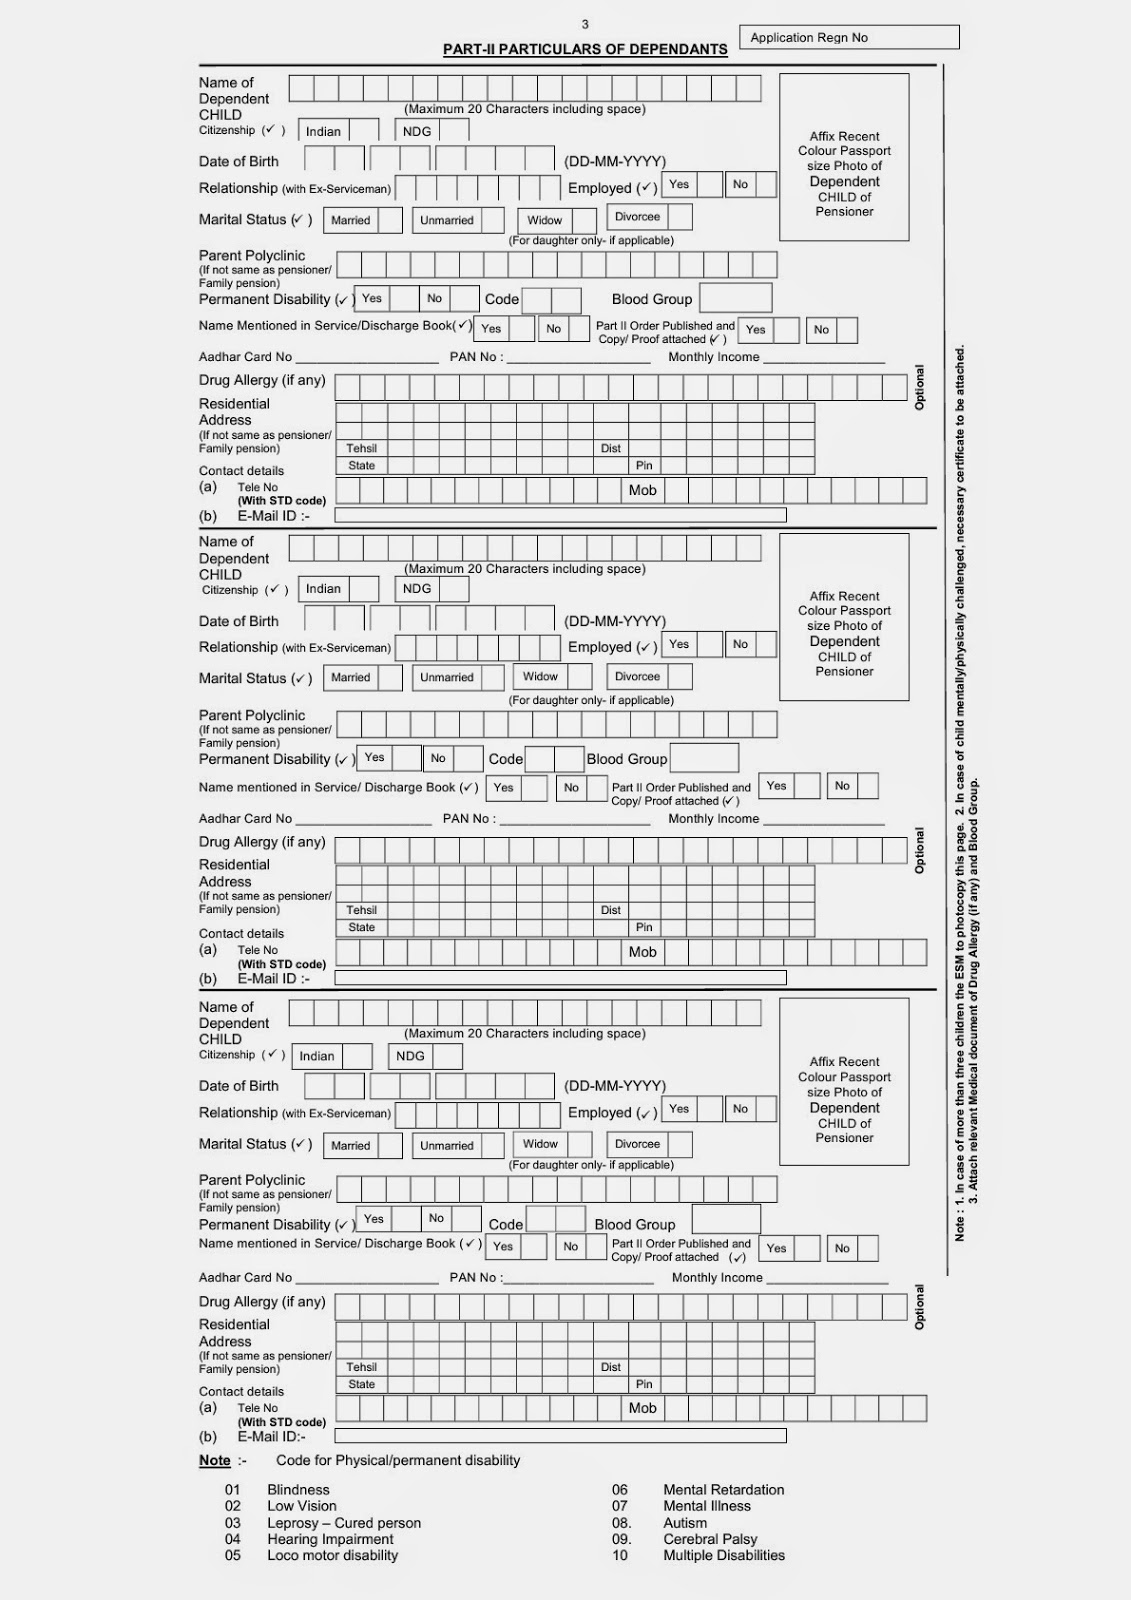 Echs application form for membership rev 2015 central echsapplicationformformembershippart 2particulars thecheapjerseys Image collections